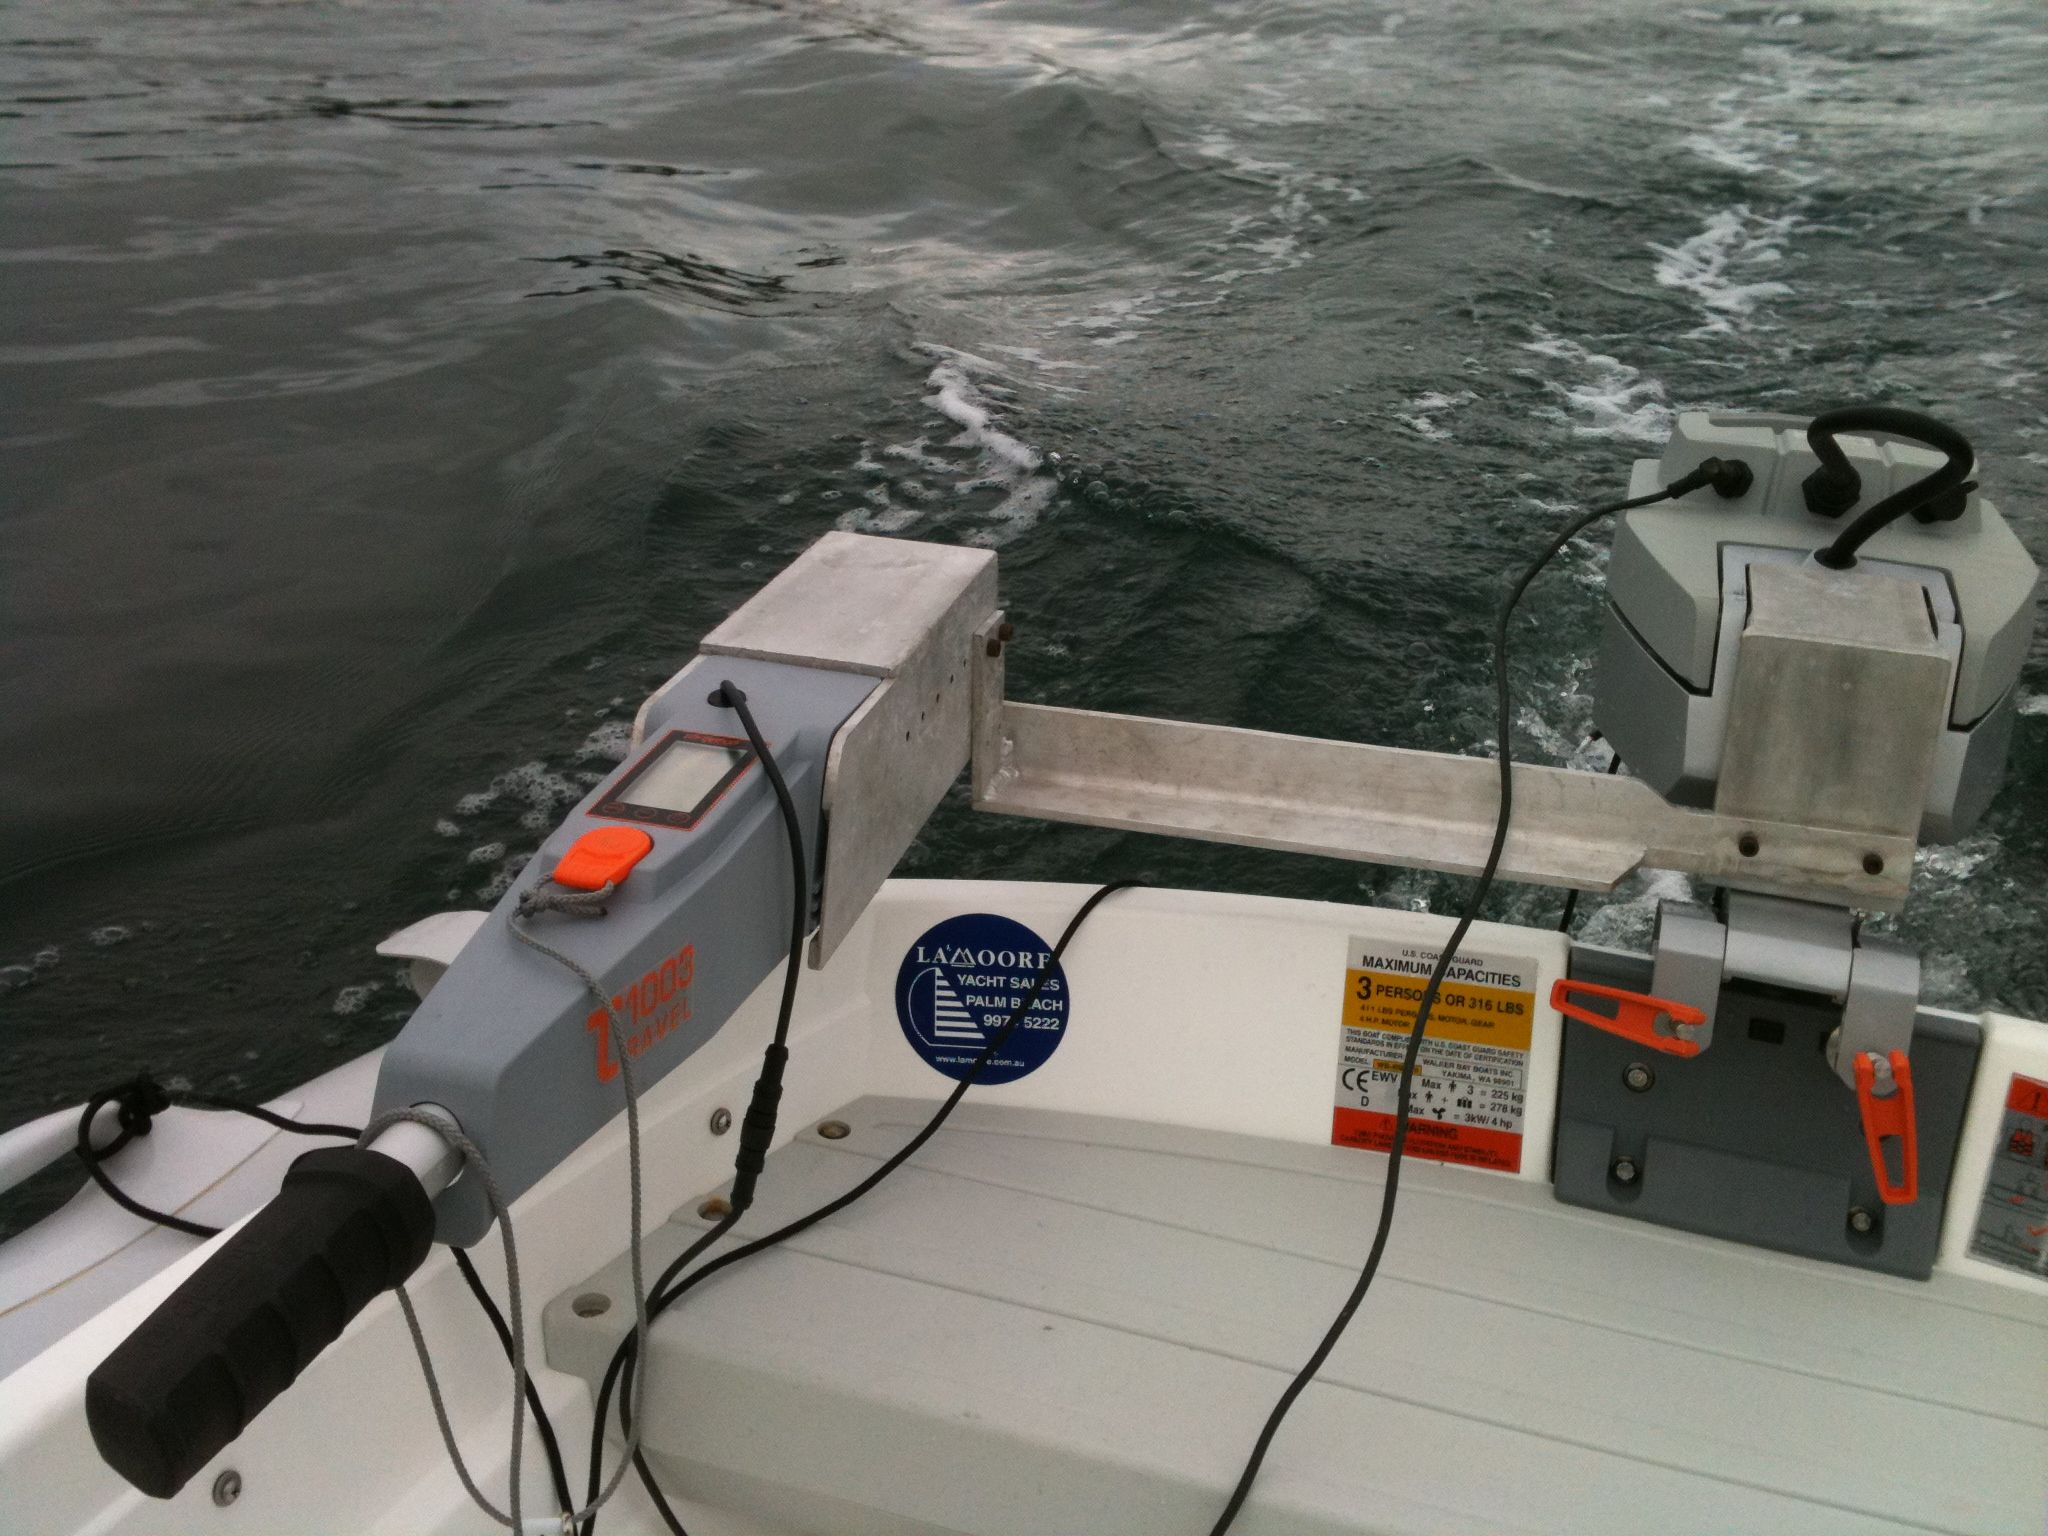 Travel 1003 trial on Walker Bay dinghy - The Torqeedo Shop on